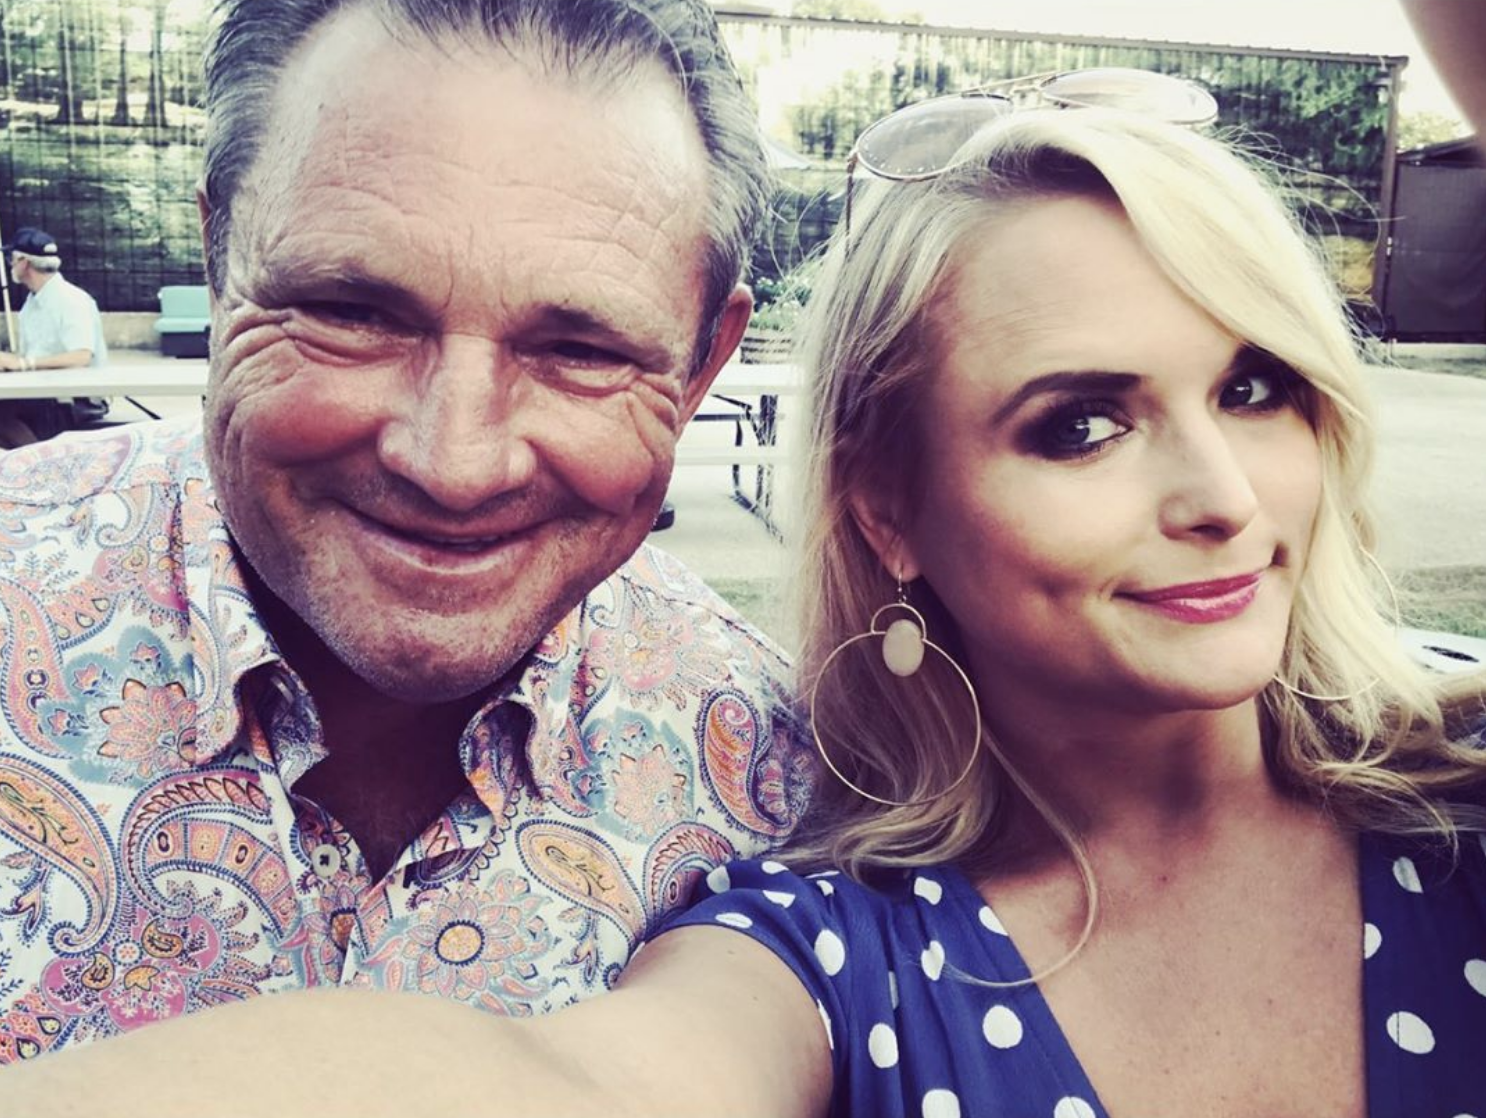 """""""Happy Father's Day to this one. Thanks for teaching me how to play a guitar, write a song, handle a gun, and stand strong in who I am. For all the haggard songs and for all the fried eggs and bacon first thing in the morning for 35 years. #RickLambert #yallwantsomeeggs?""""   Miranda Lambert, who posted this selfie with dad Rick Lambert on June 16, 2019"""